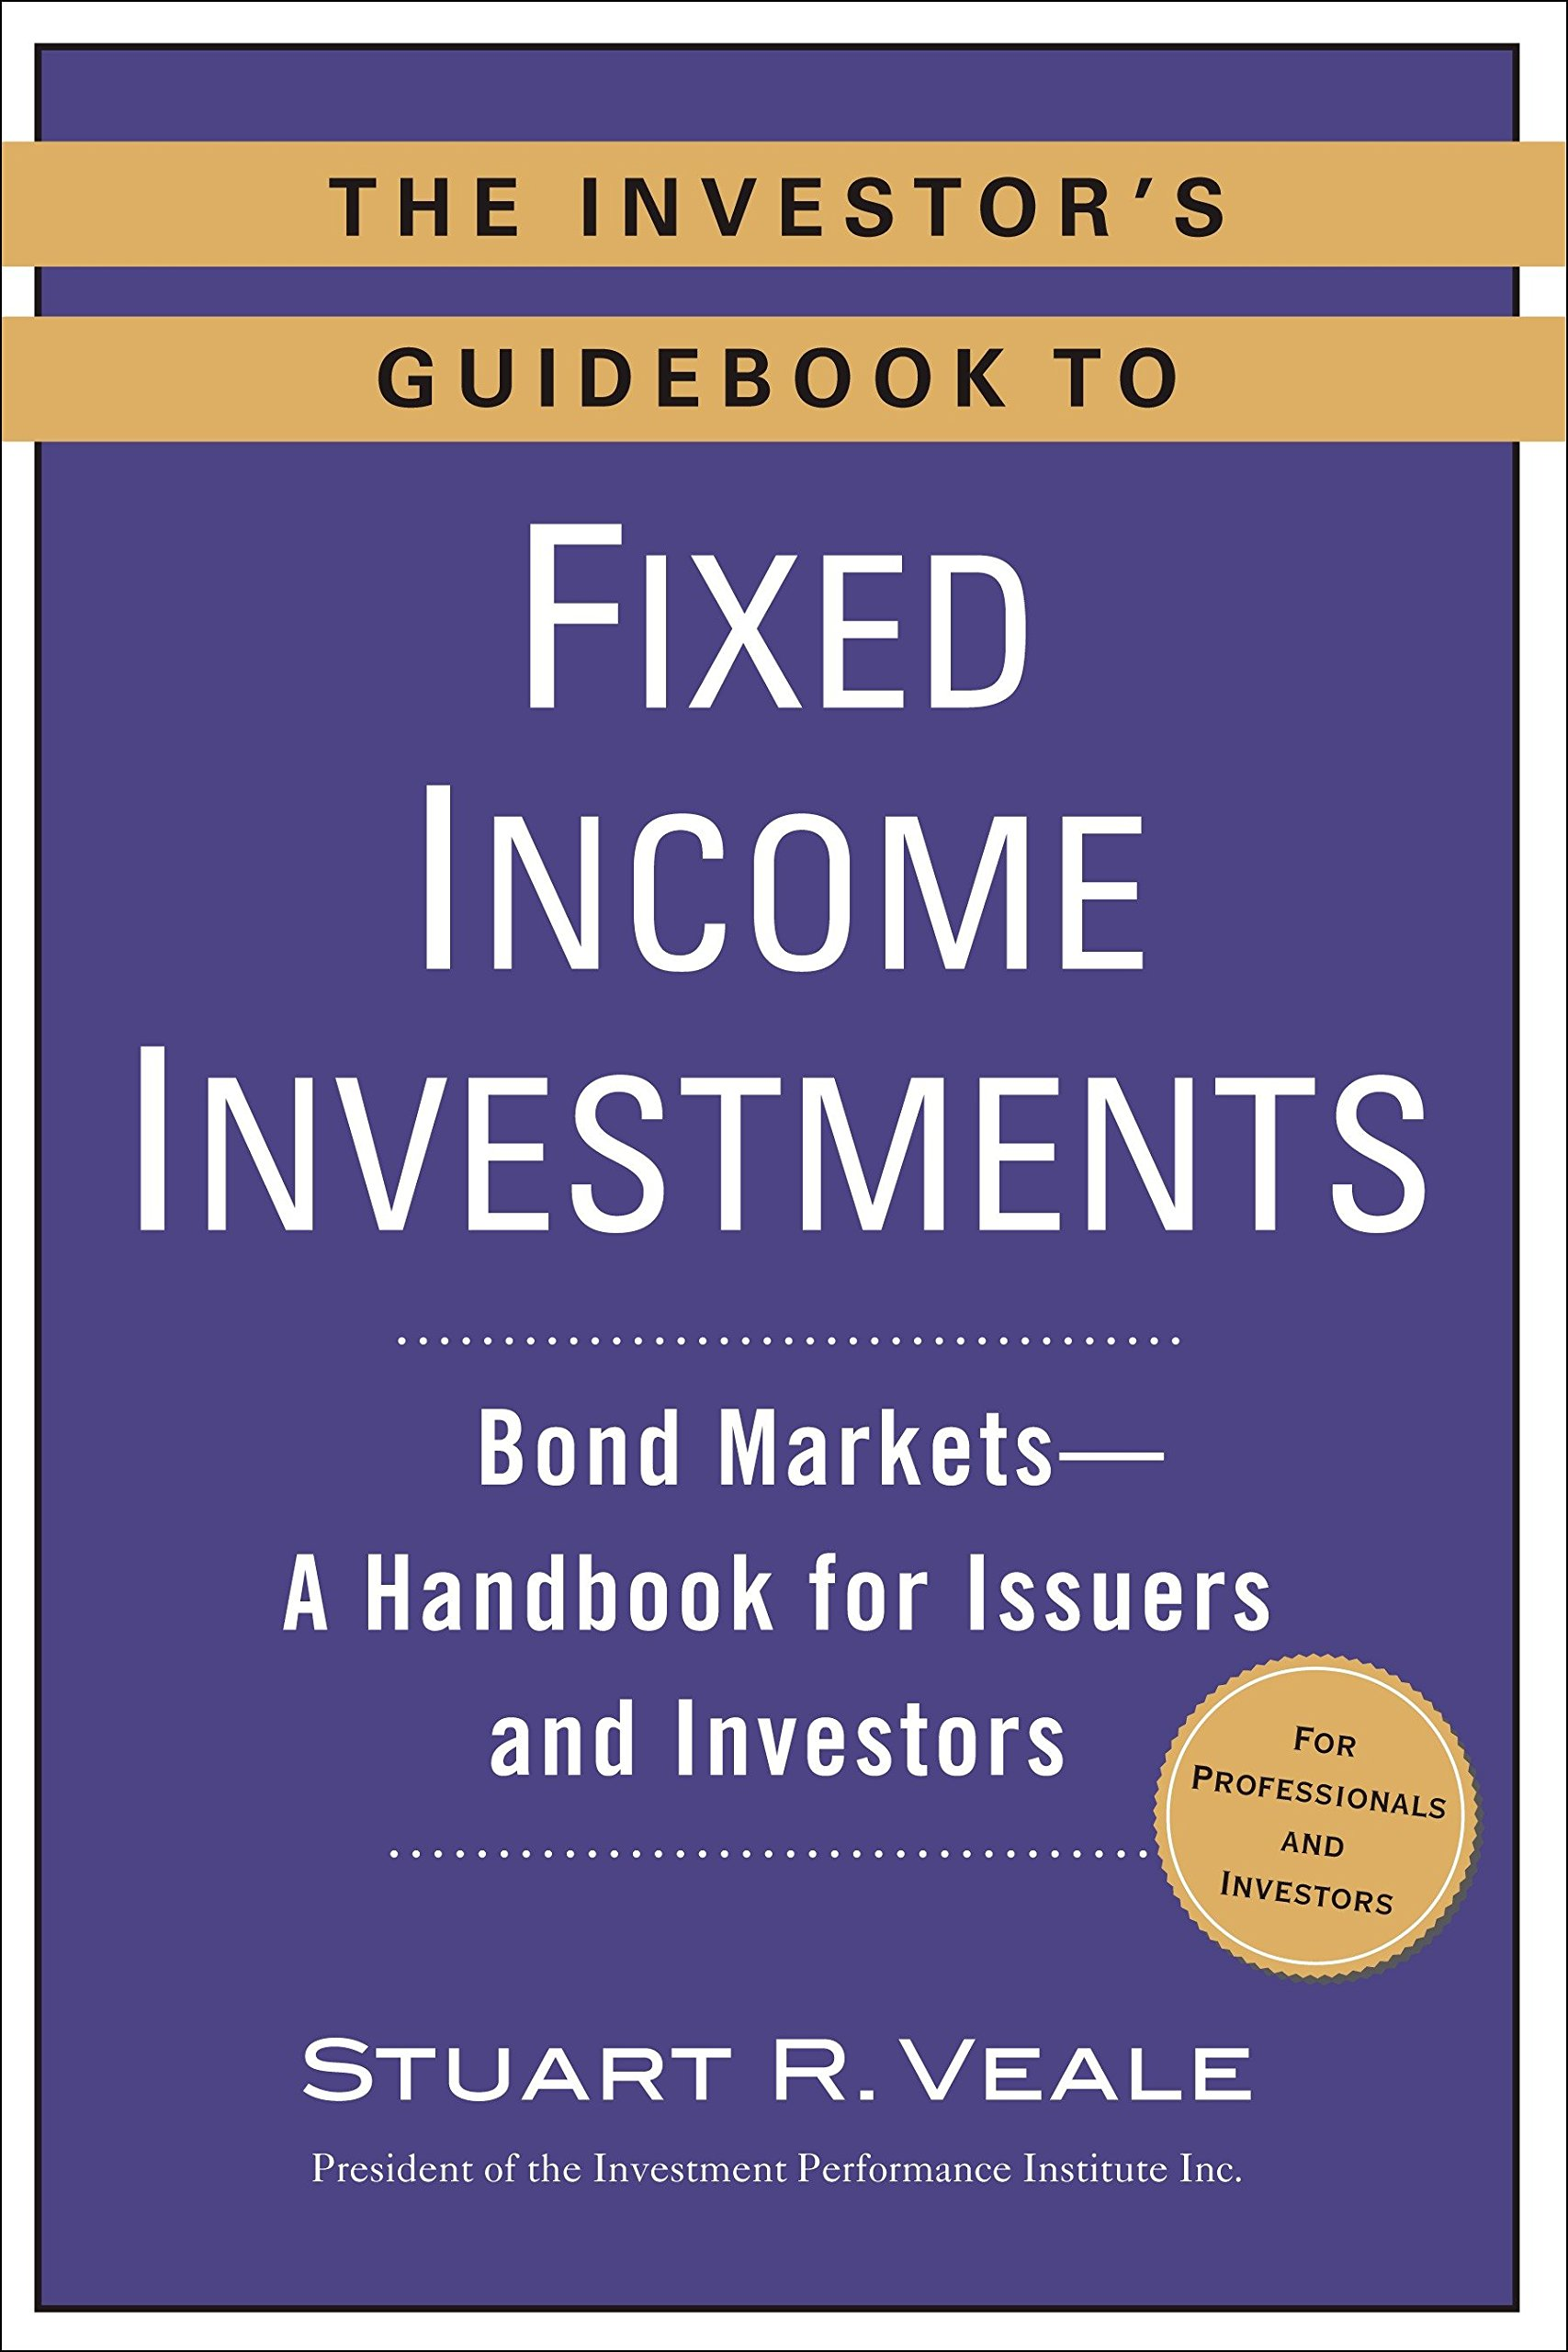 The Investor's Guidebook to Fixed Income Investments: Bond Markets--A Handbook for Issuers and Investors PDF